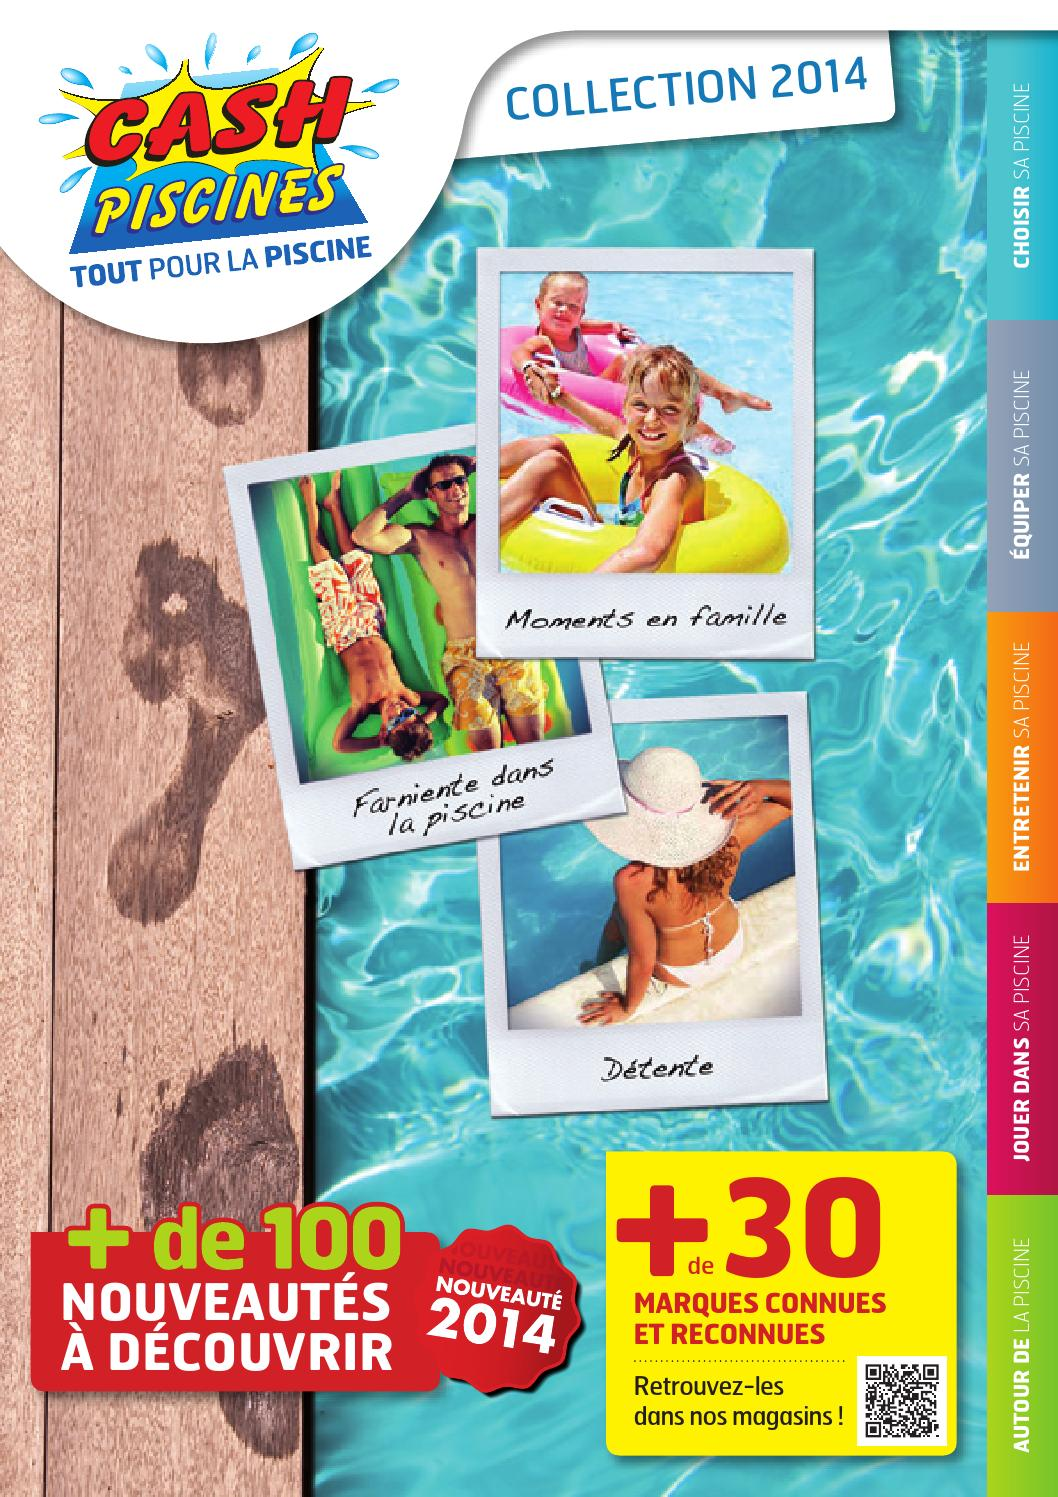 Cash piscines catalogue 2014 by octave octave issuu for Cash piscine catalogue